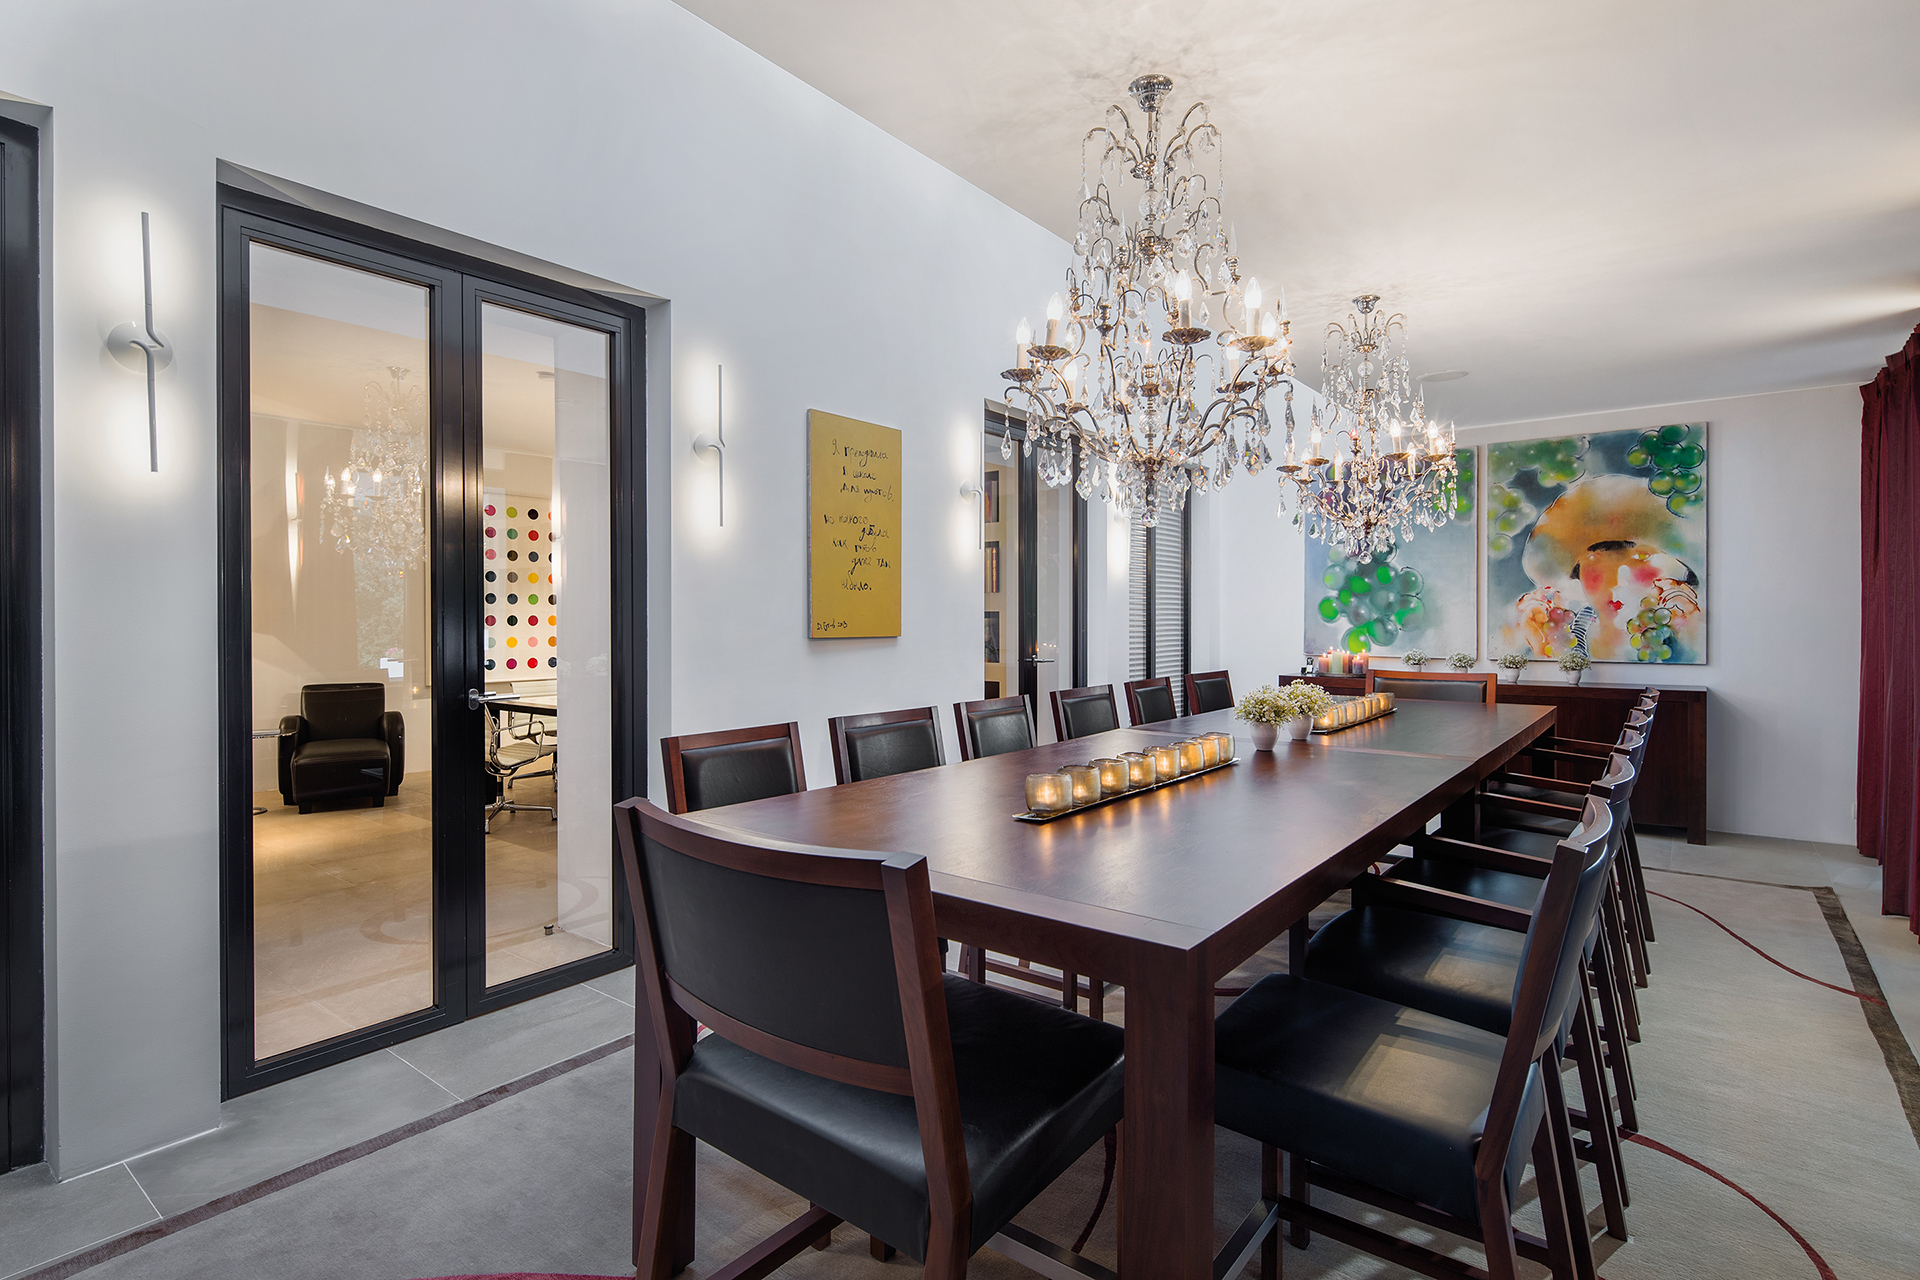 Indoor dining area with white walls and chandeliers